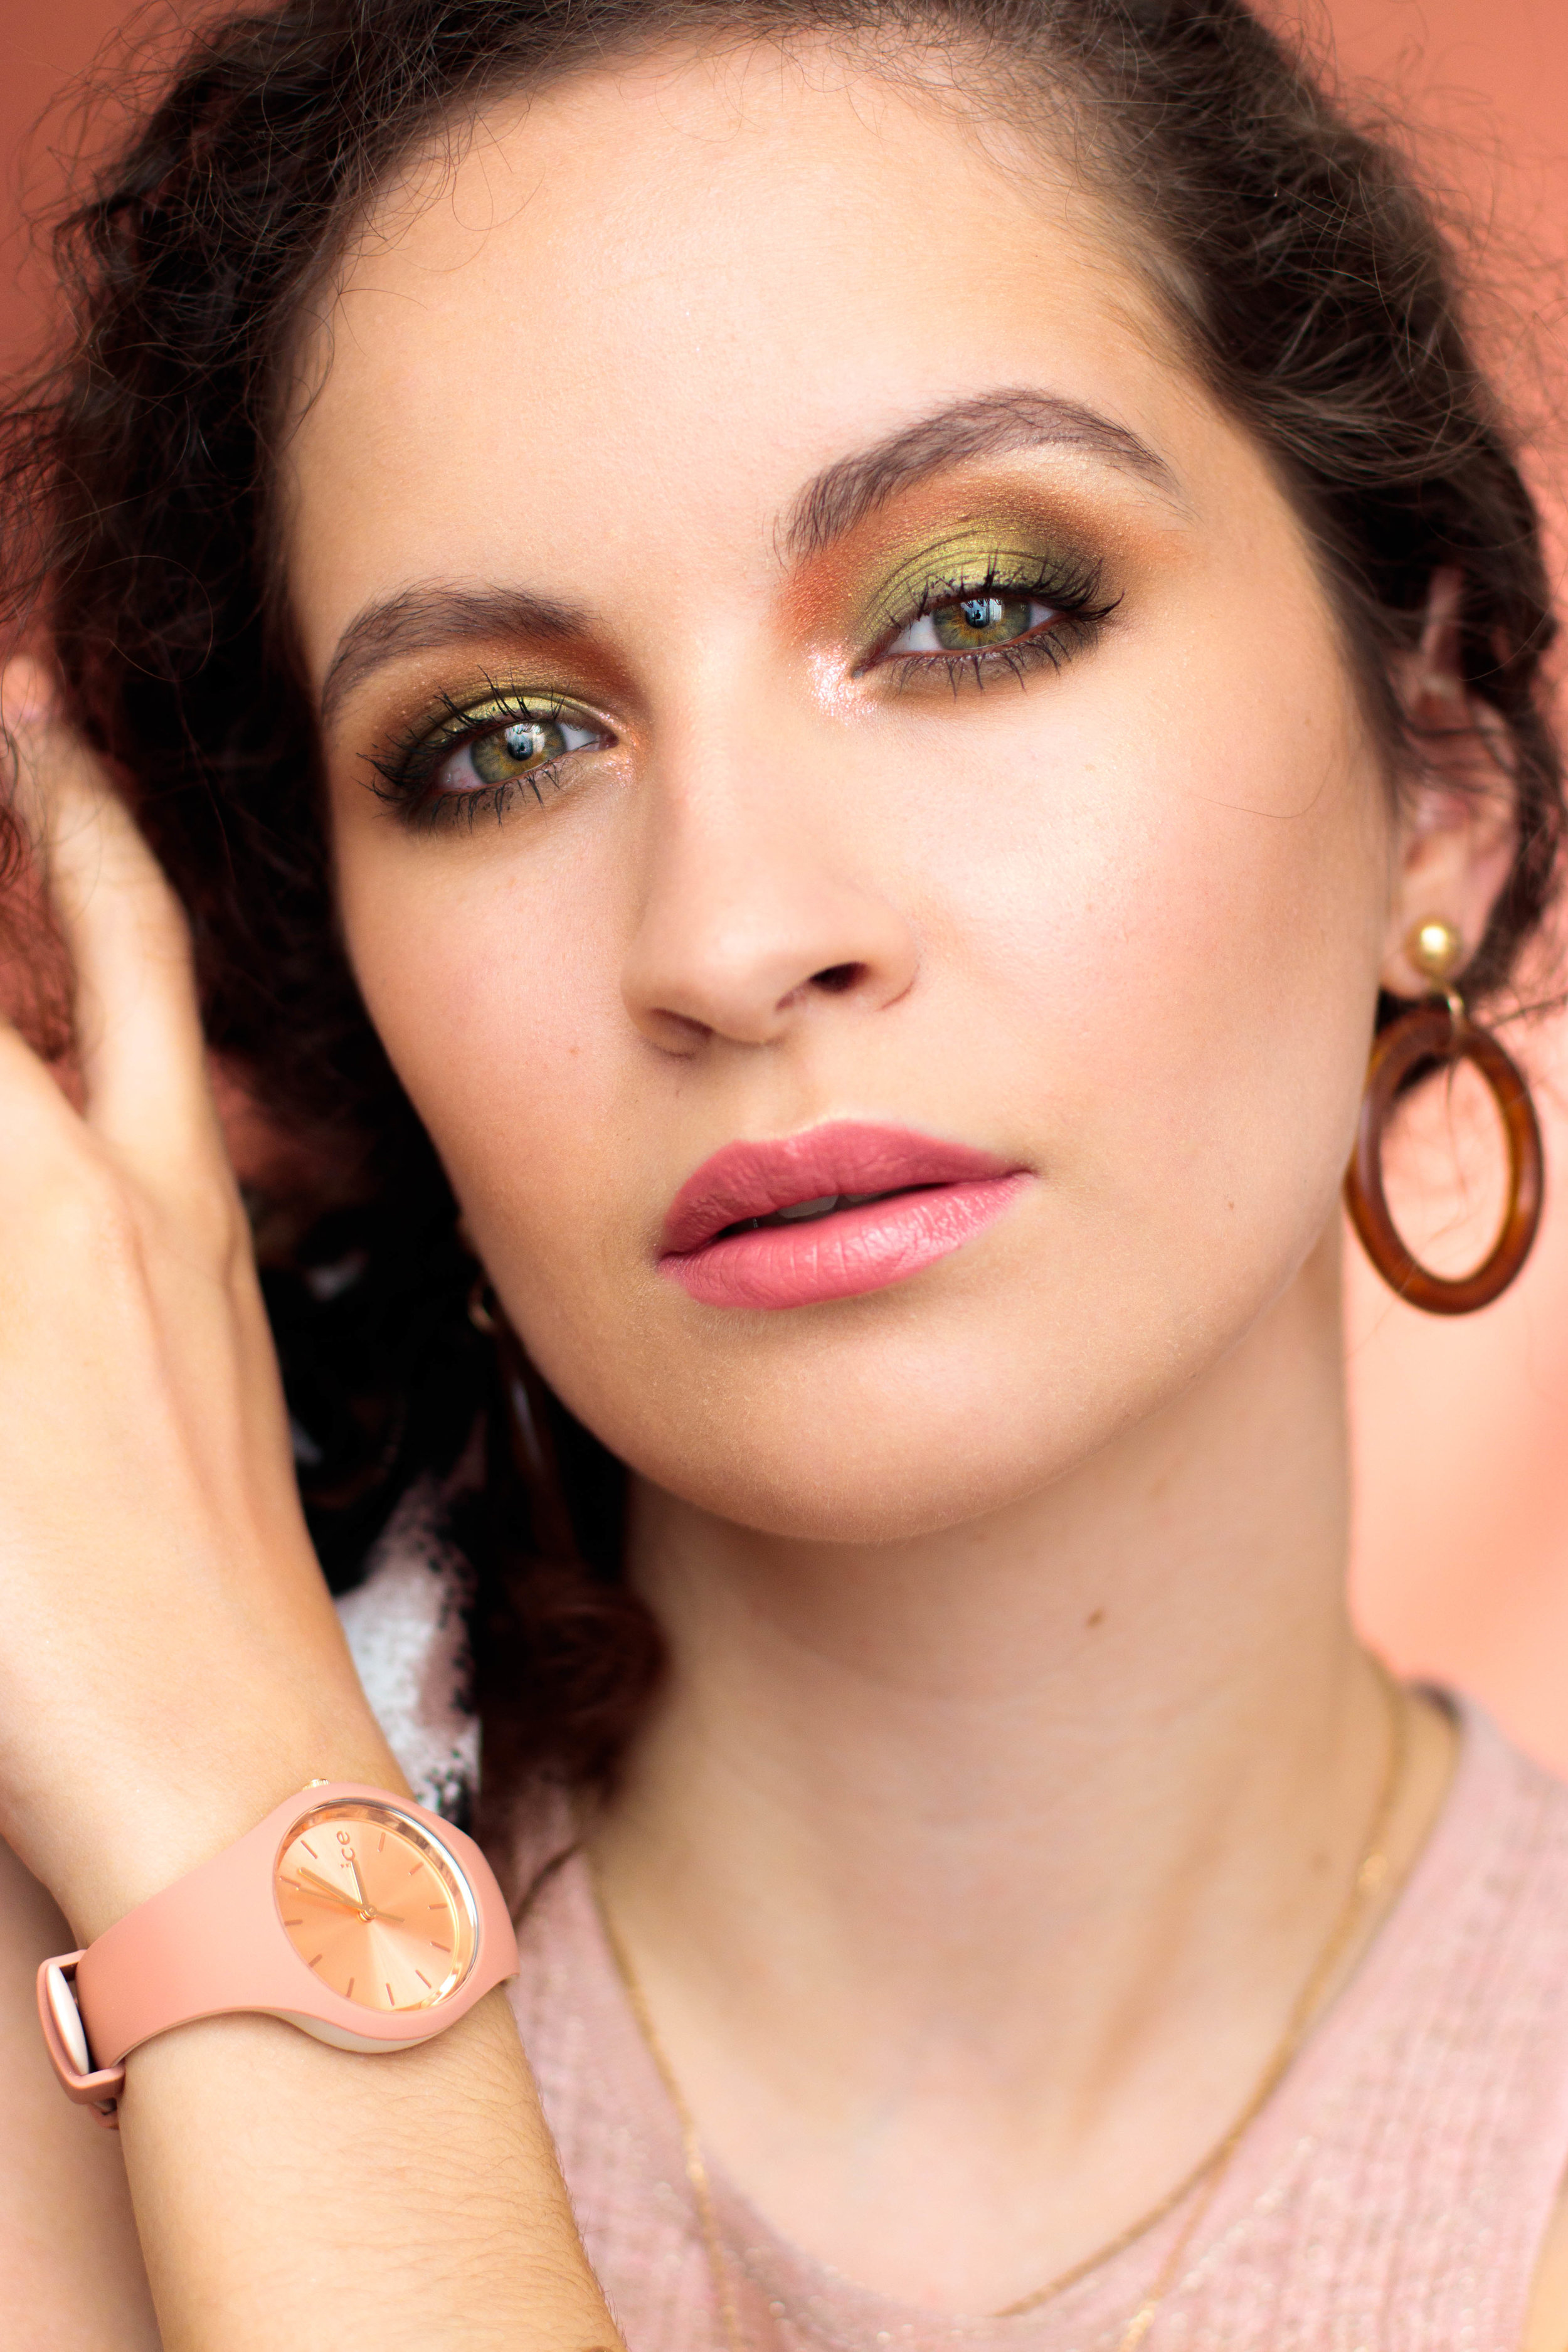 ice-watch-duo-chic-makeup-pauuulette-makeup-revolution-3.jpg